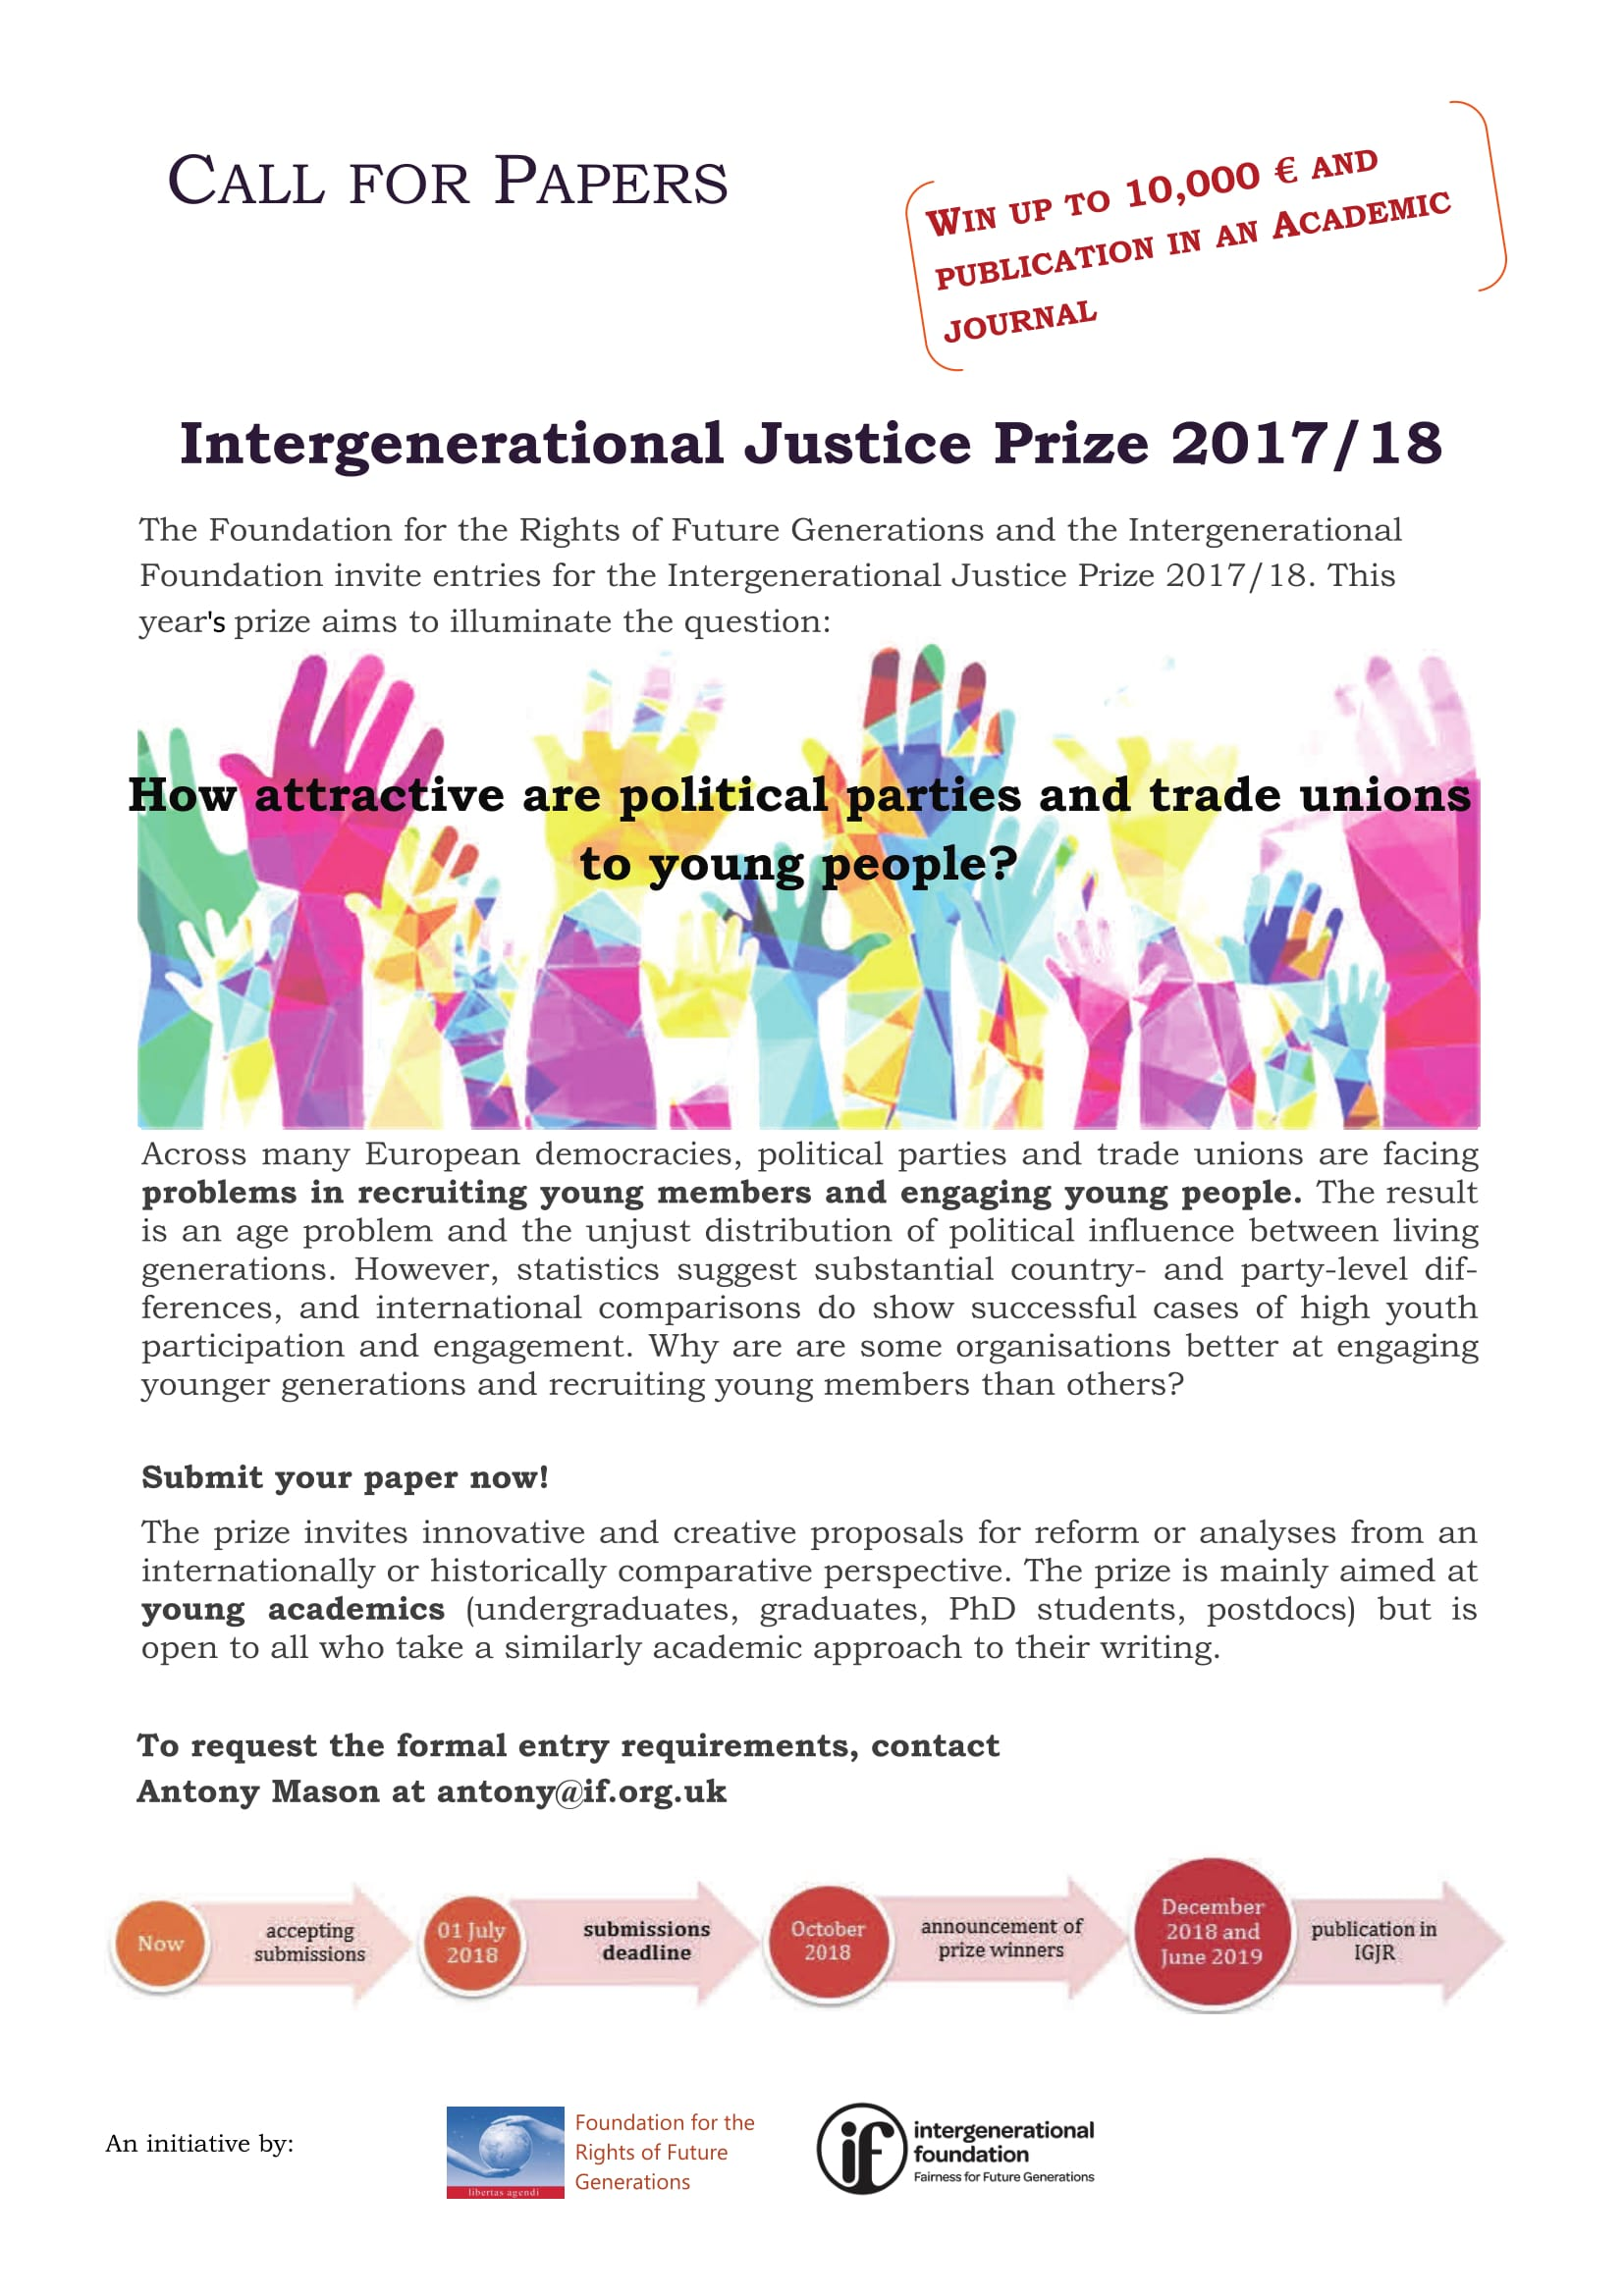 poster_intergenerational justice prize 201718-1